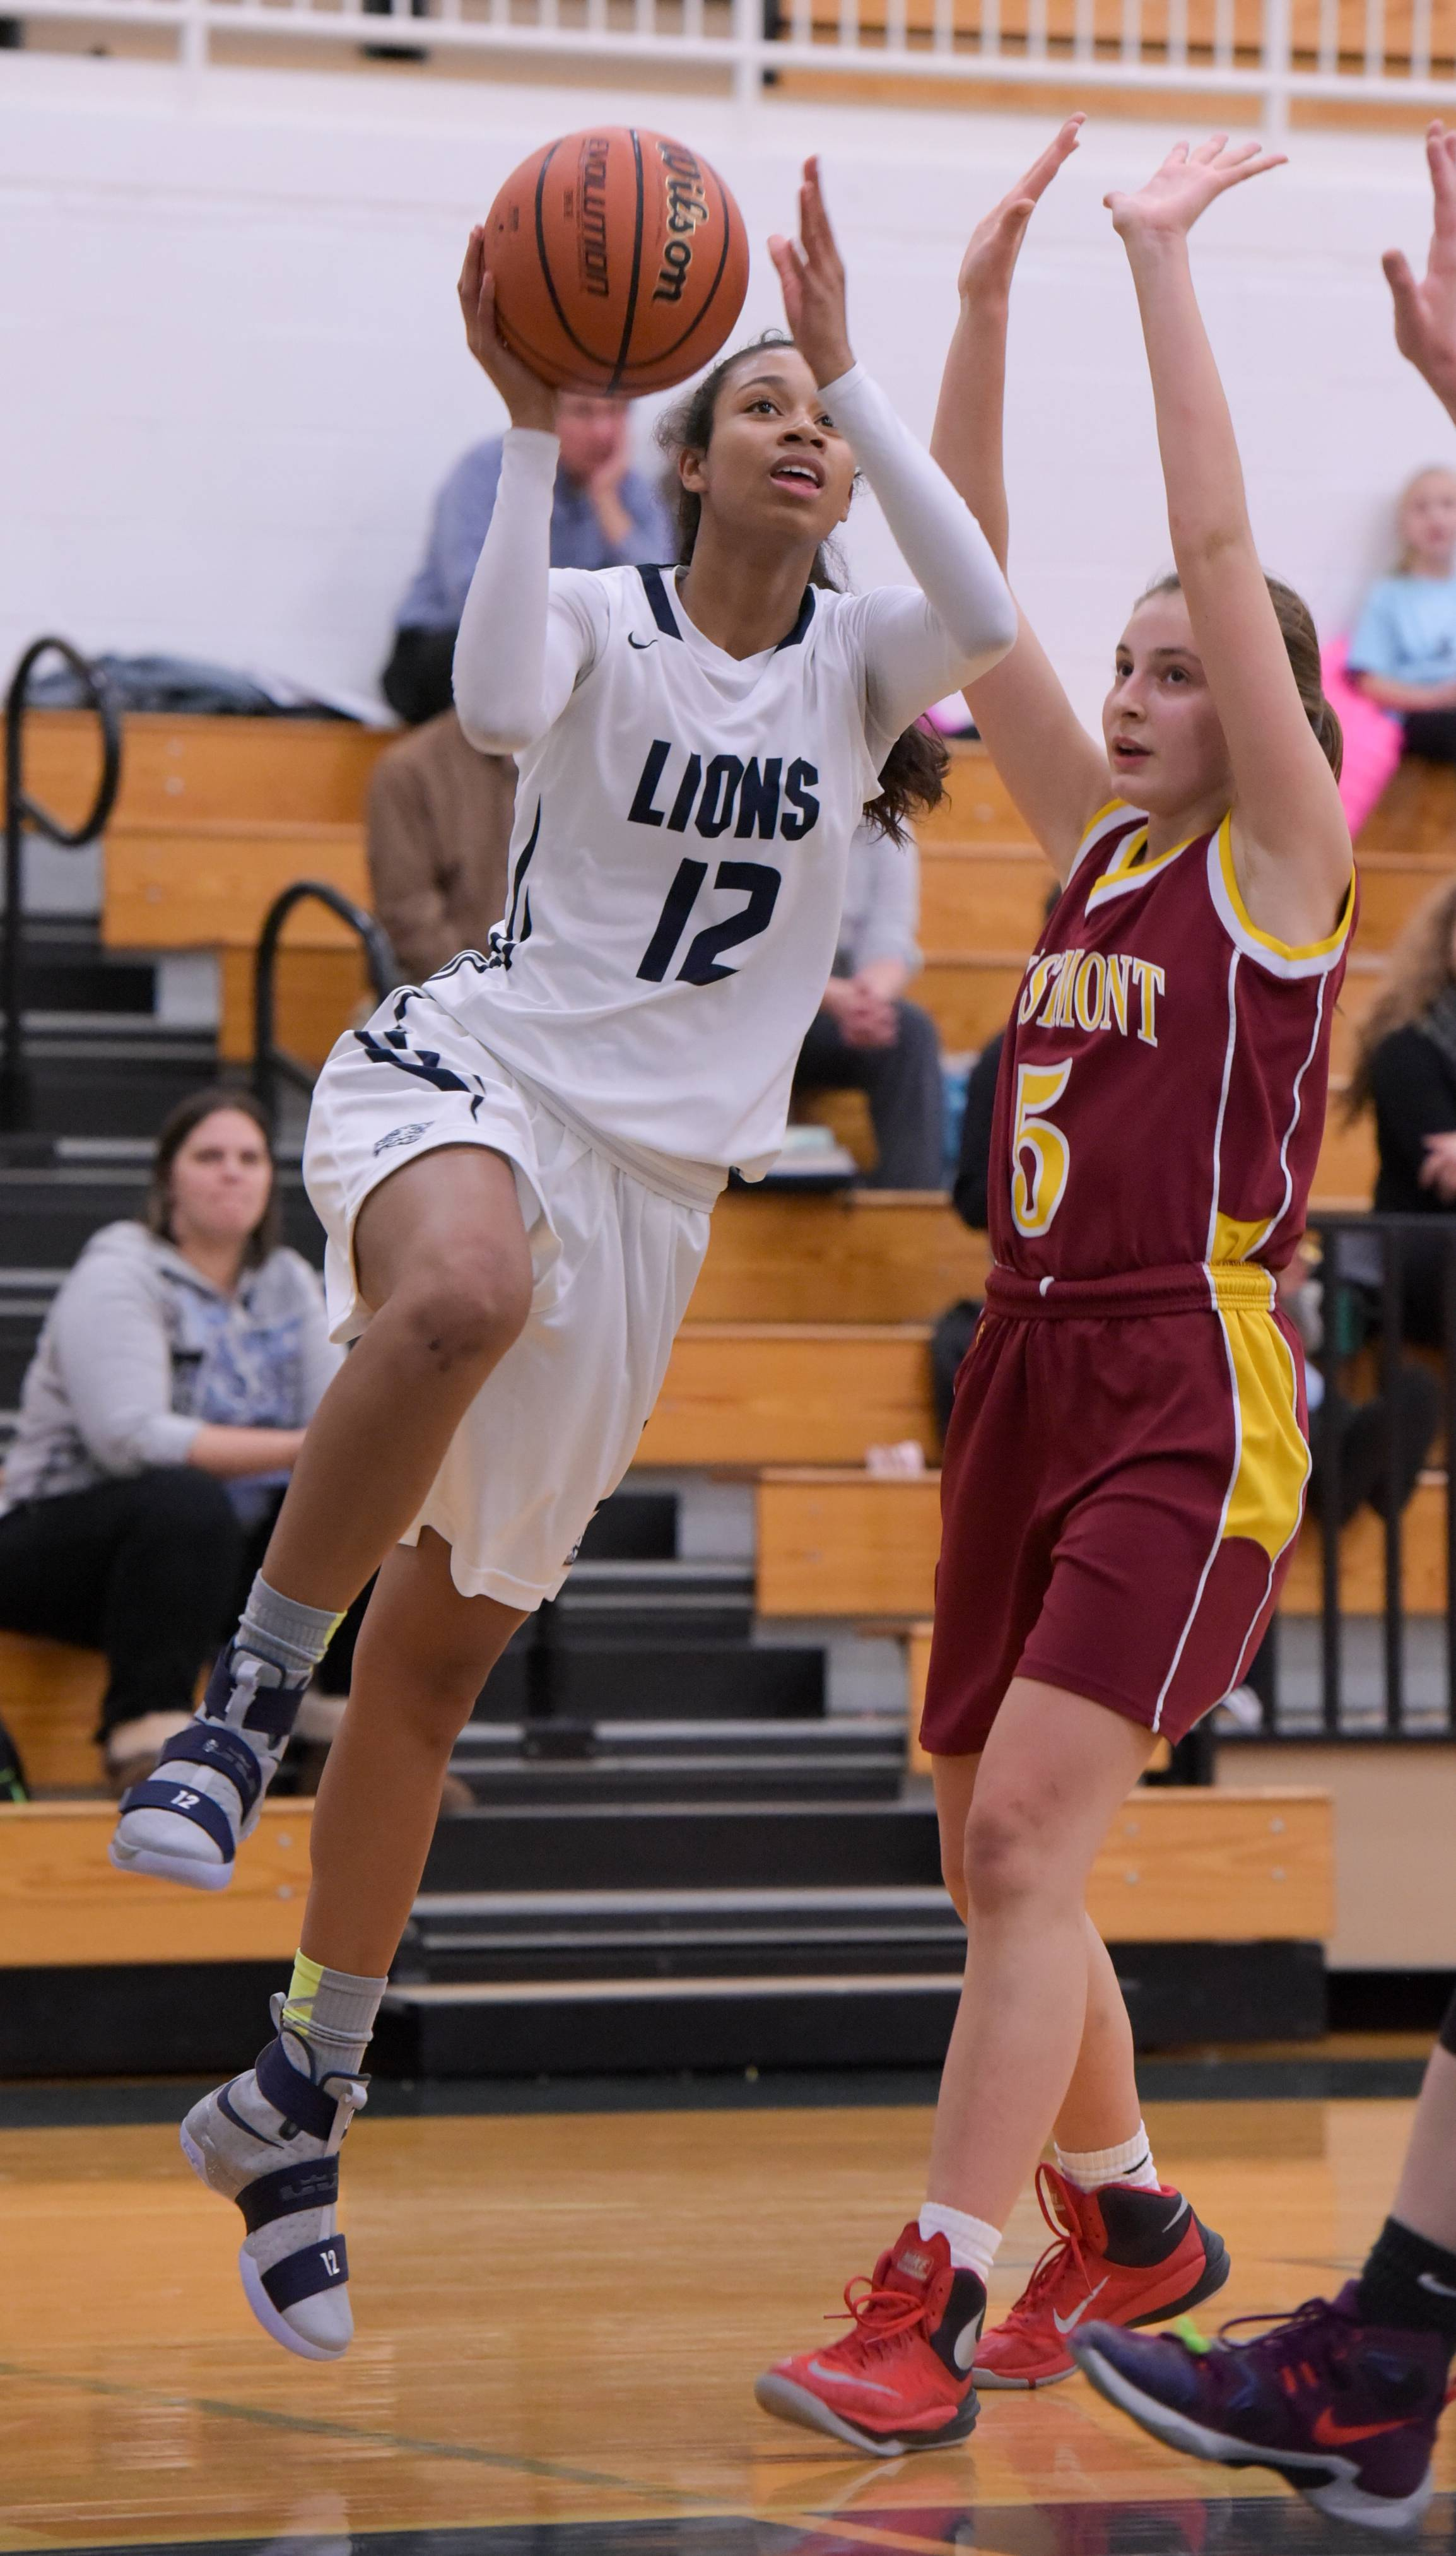 Lisle's TyAnn Legrand-Melton lays up for a shot past Westmont's Sydney Pardy during girls varsity basketball action Monday in Lisle.